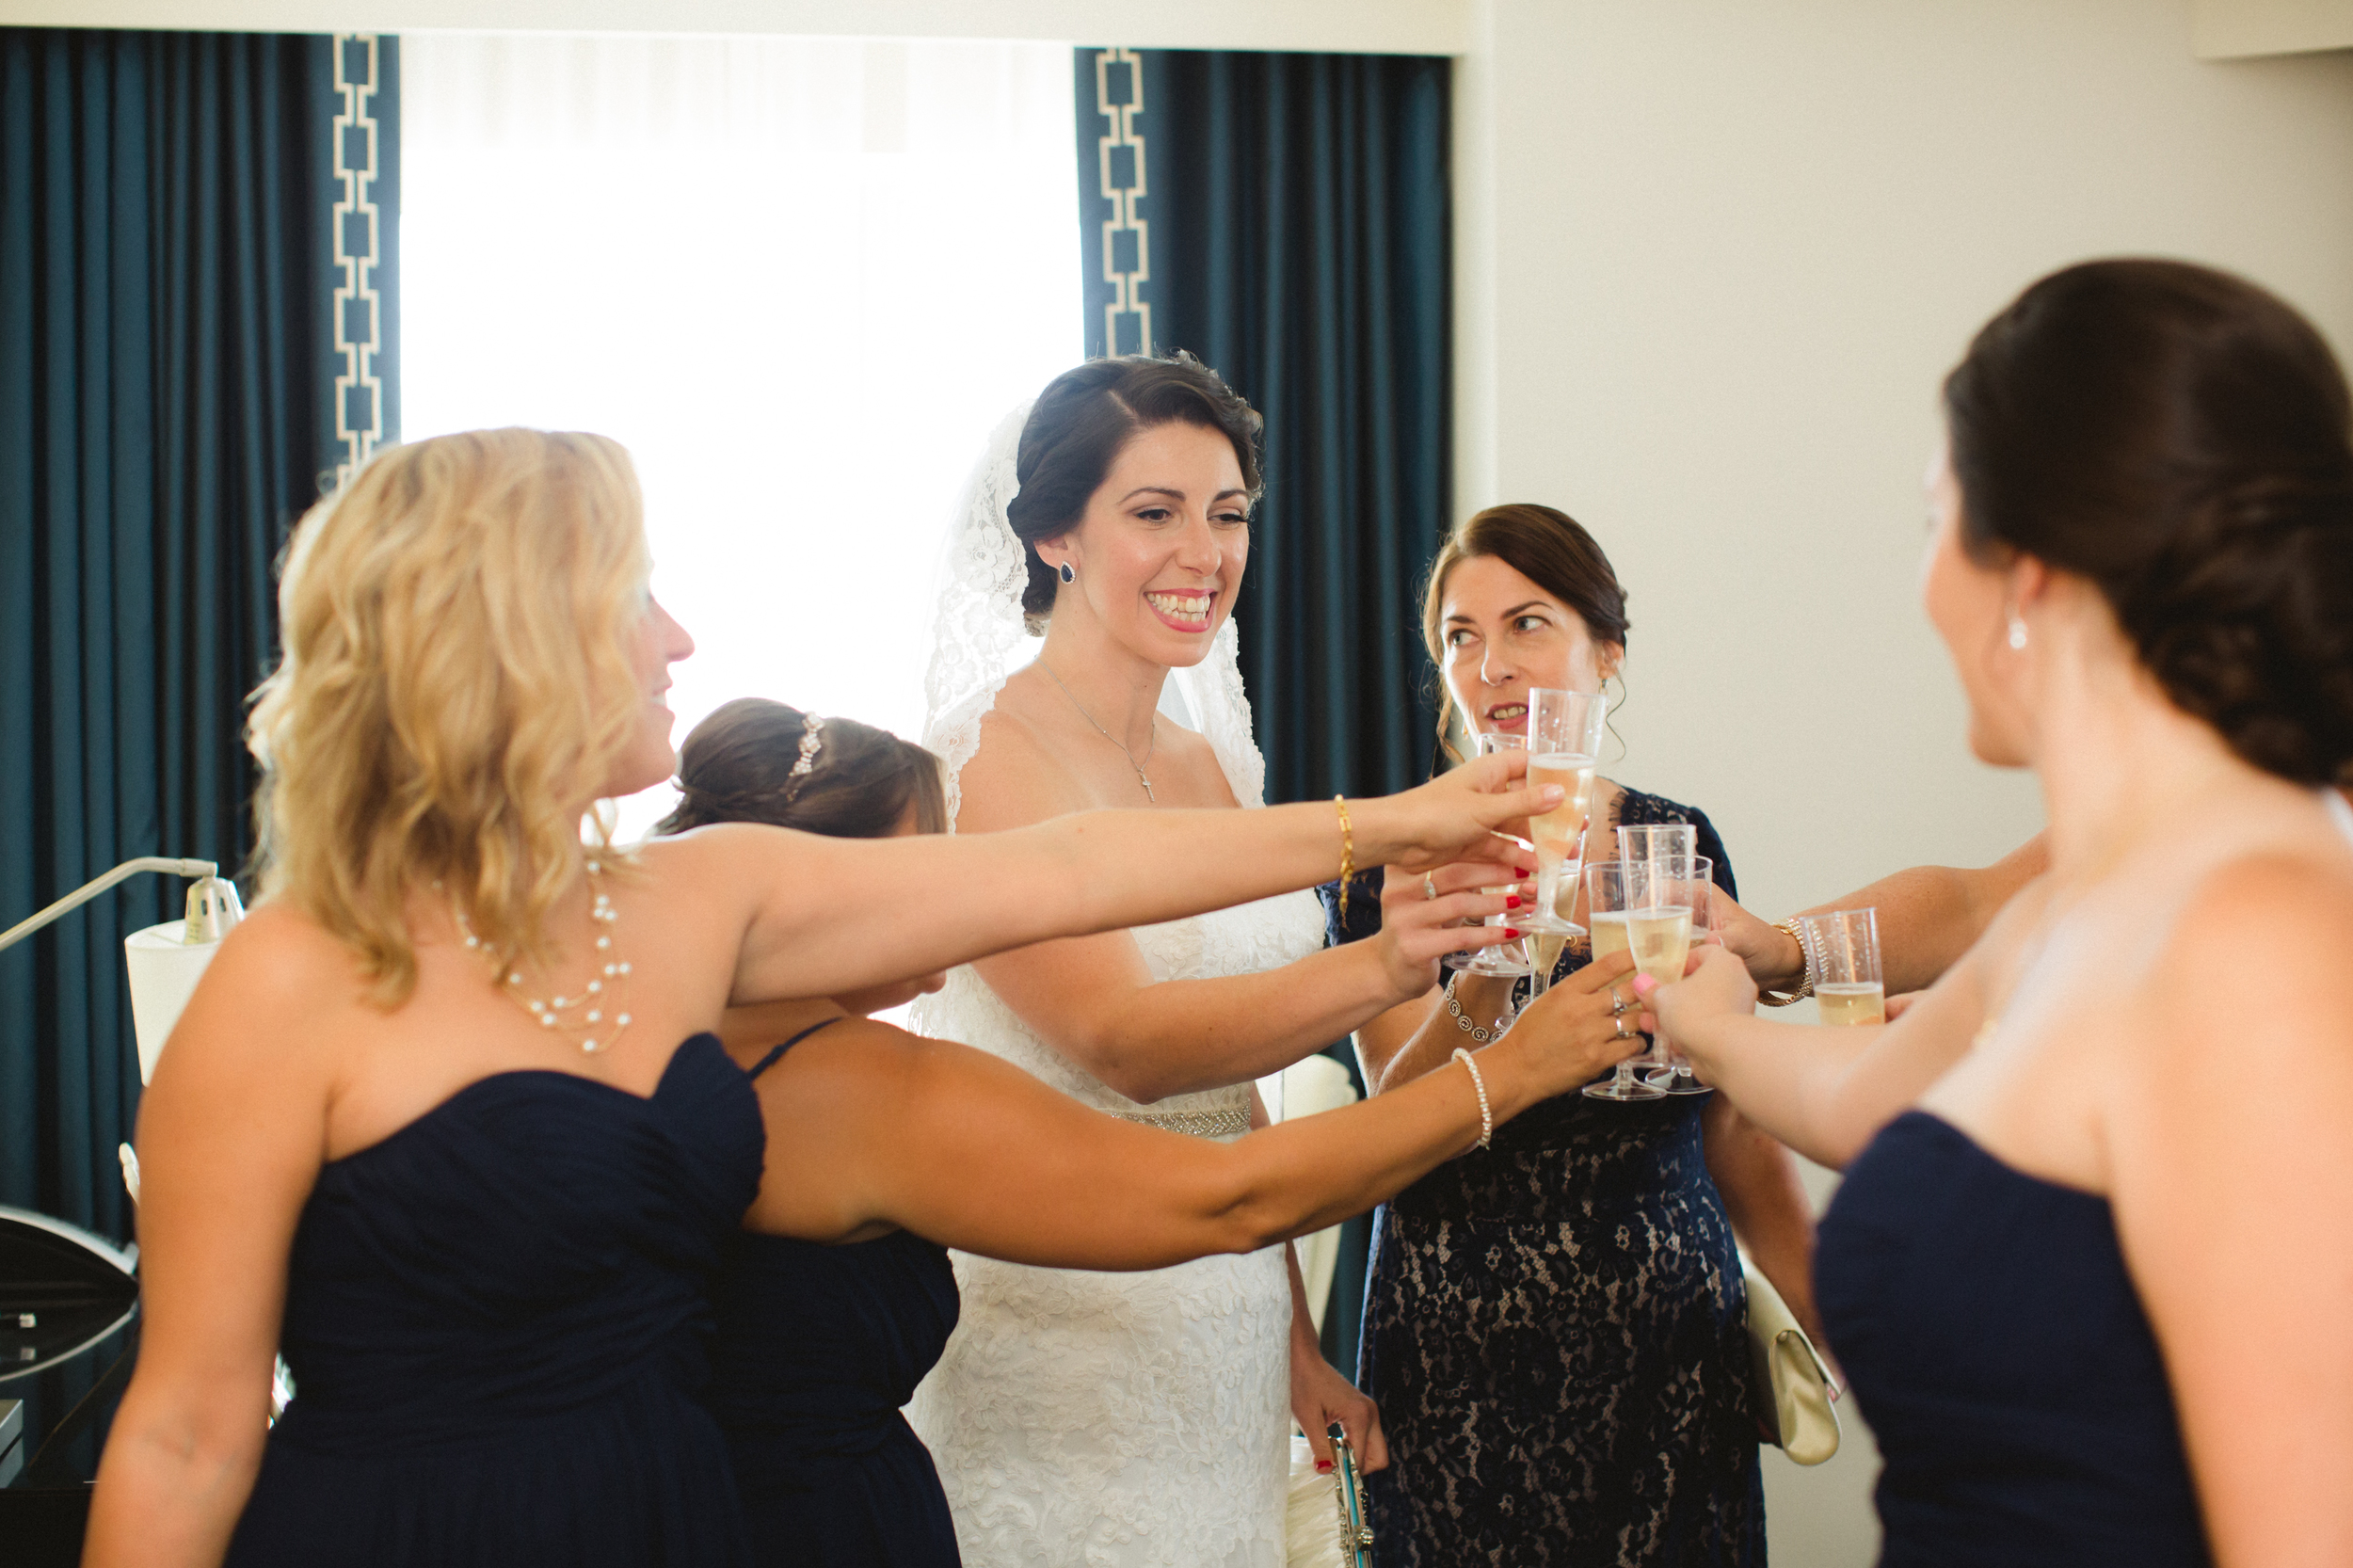 Vness_Photography_Wedding_Photographer_Washington-DC_Fish_Wedding-181.JPG